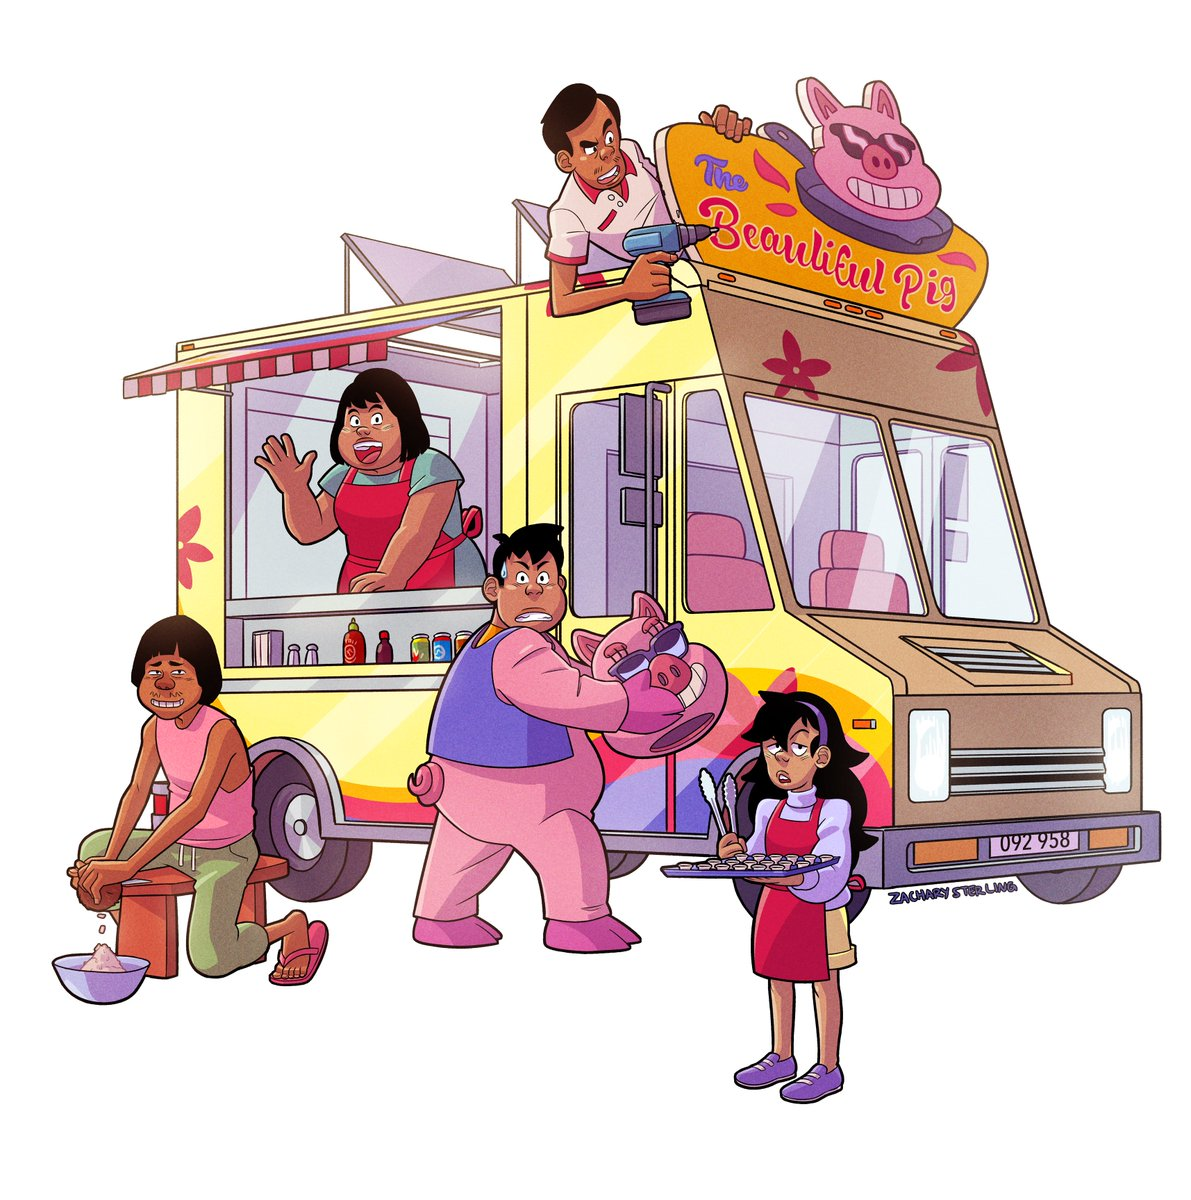 This family hopes that they can make it in the big city with their delicious, lovingly made Filipino food! (as long as nothing spooky gets in the way...)